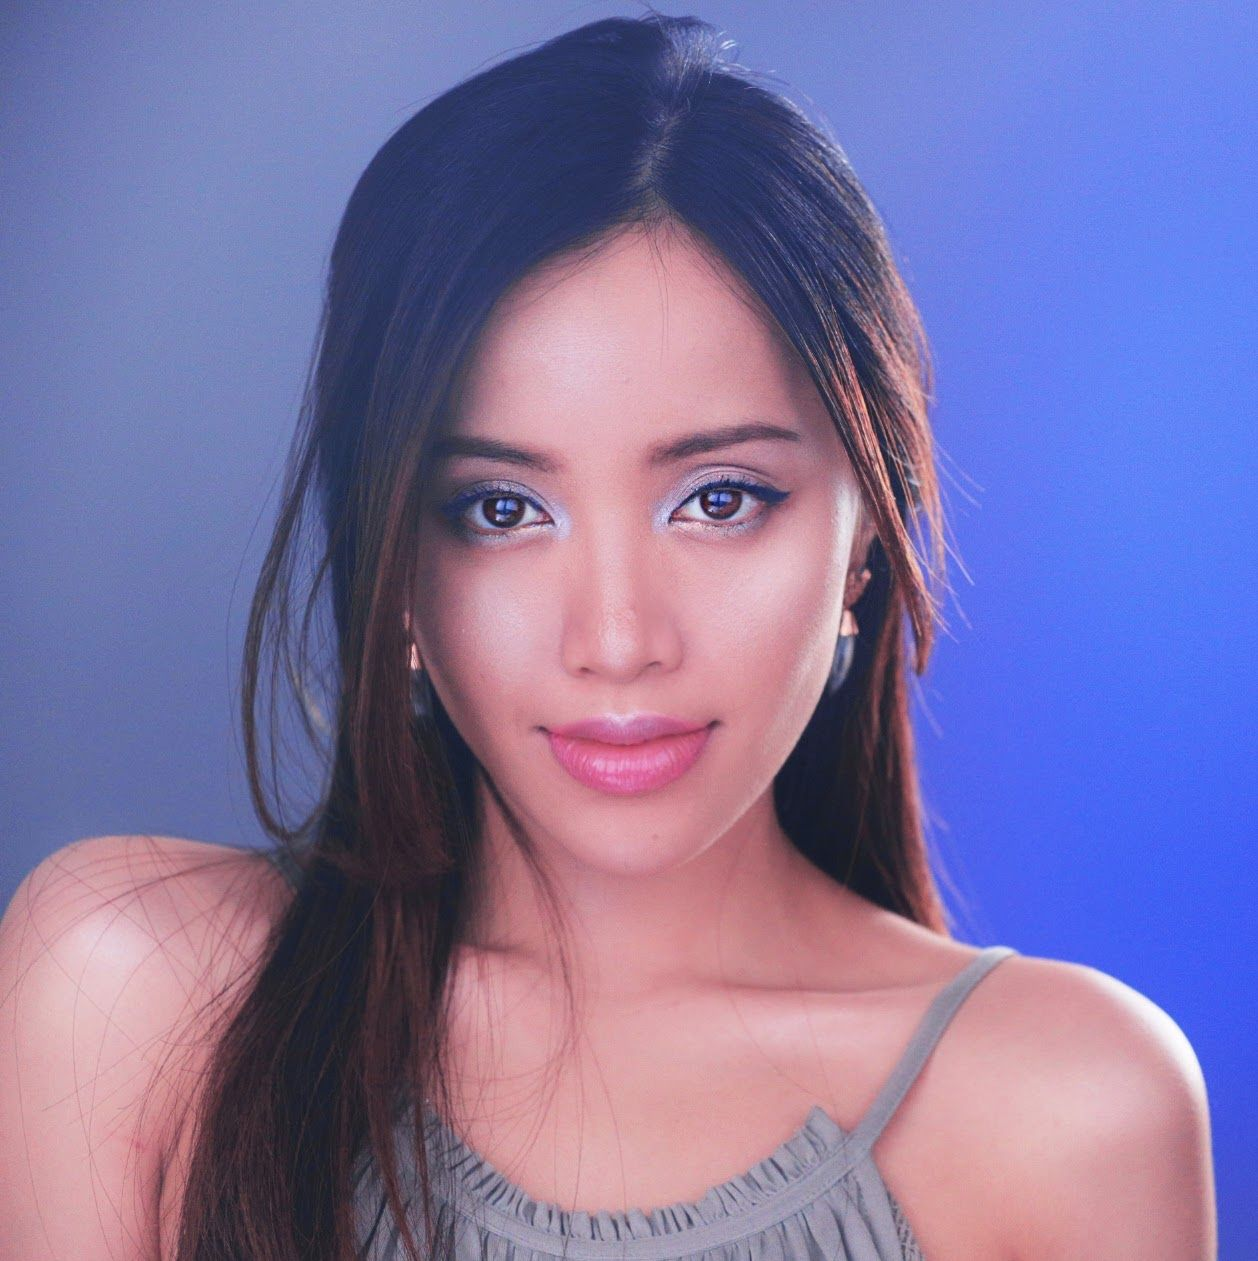 3 A person I look up to would be Michelle Phan